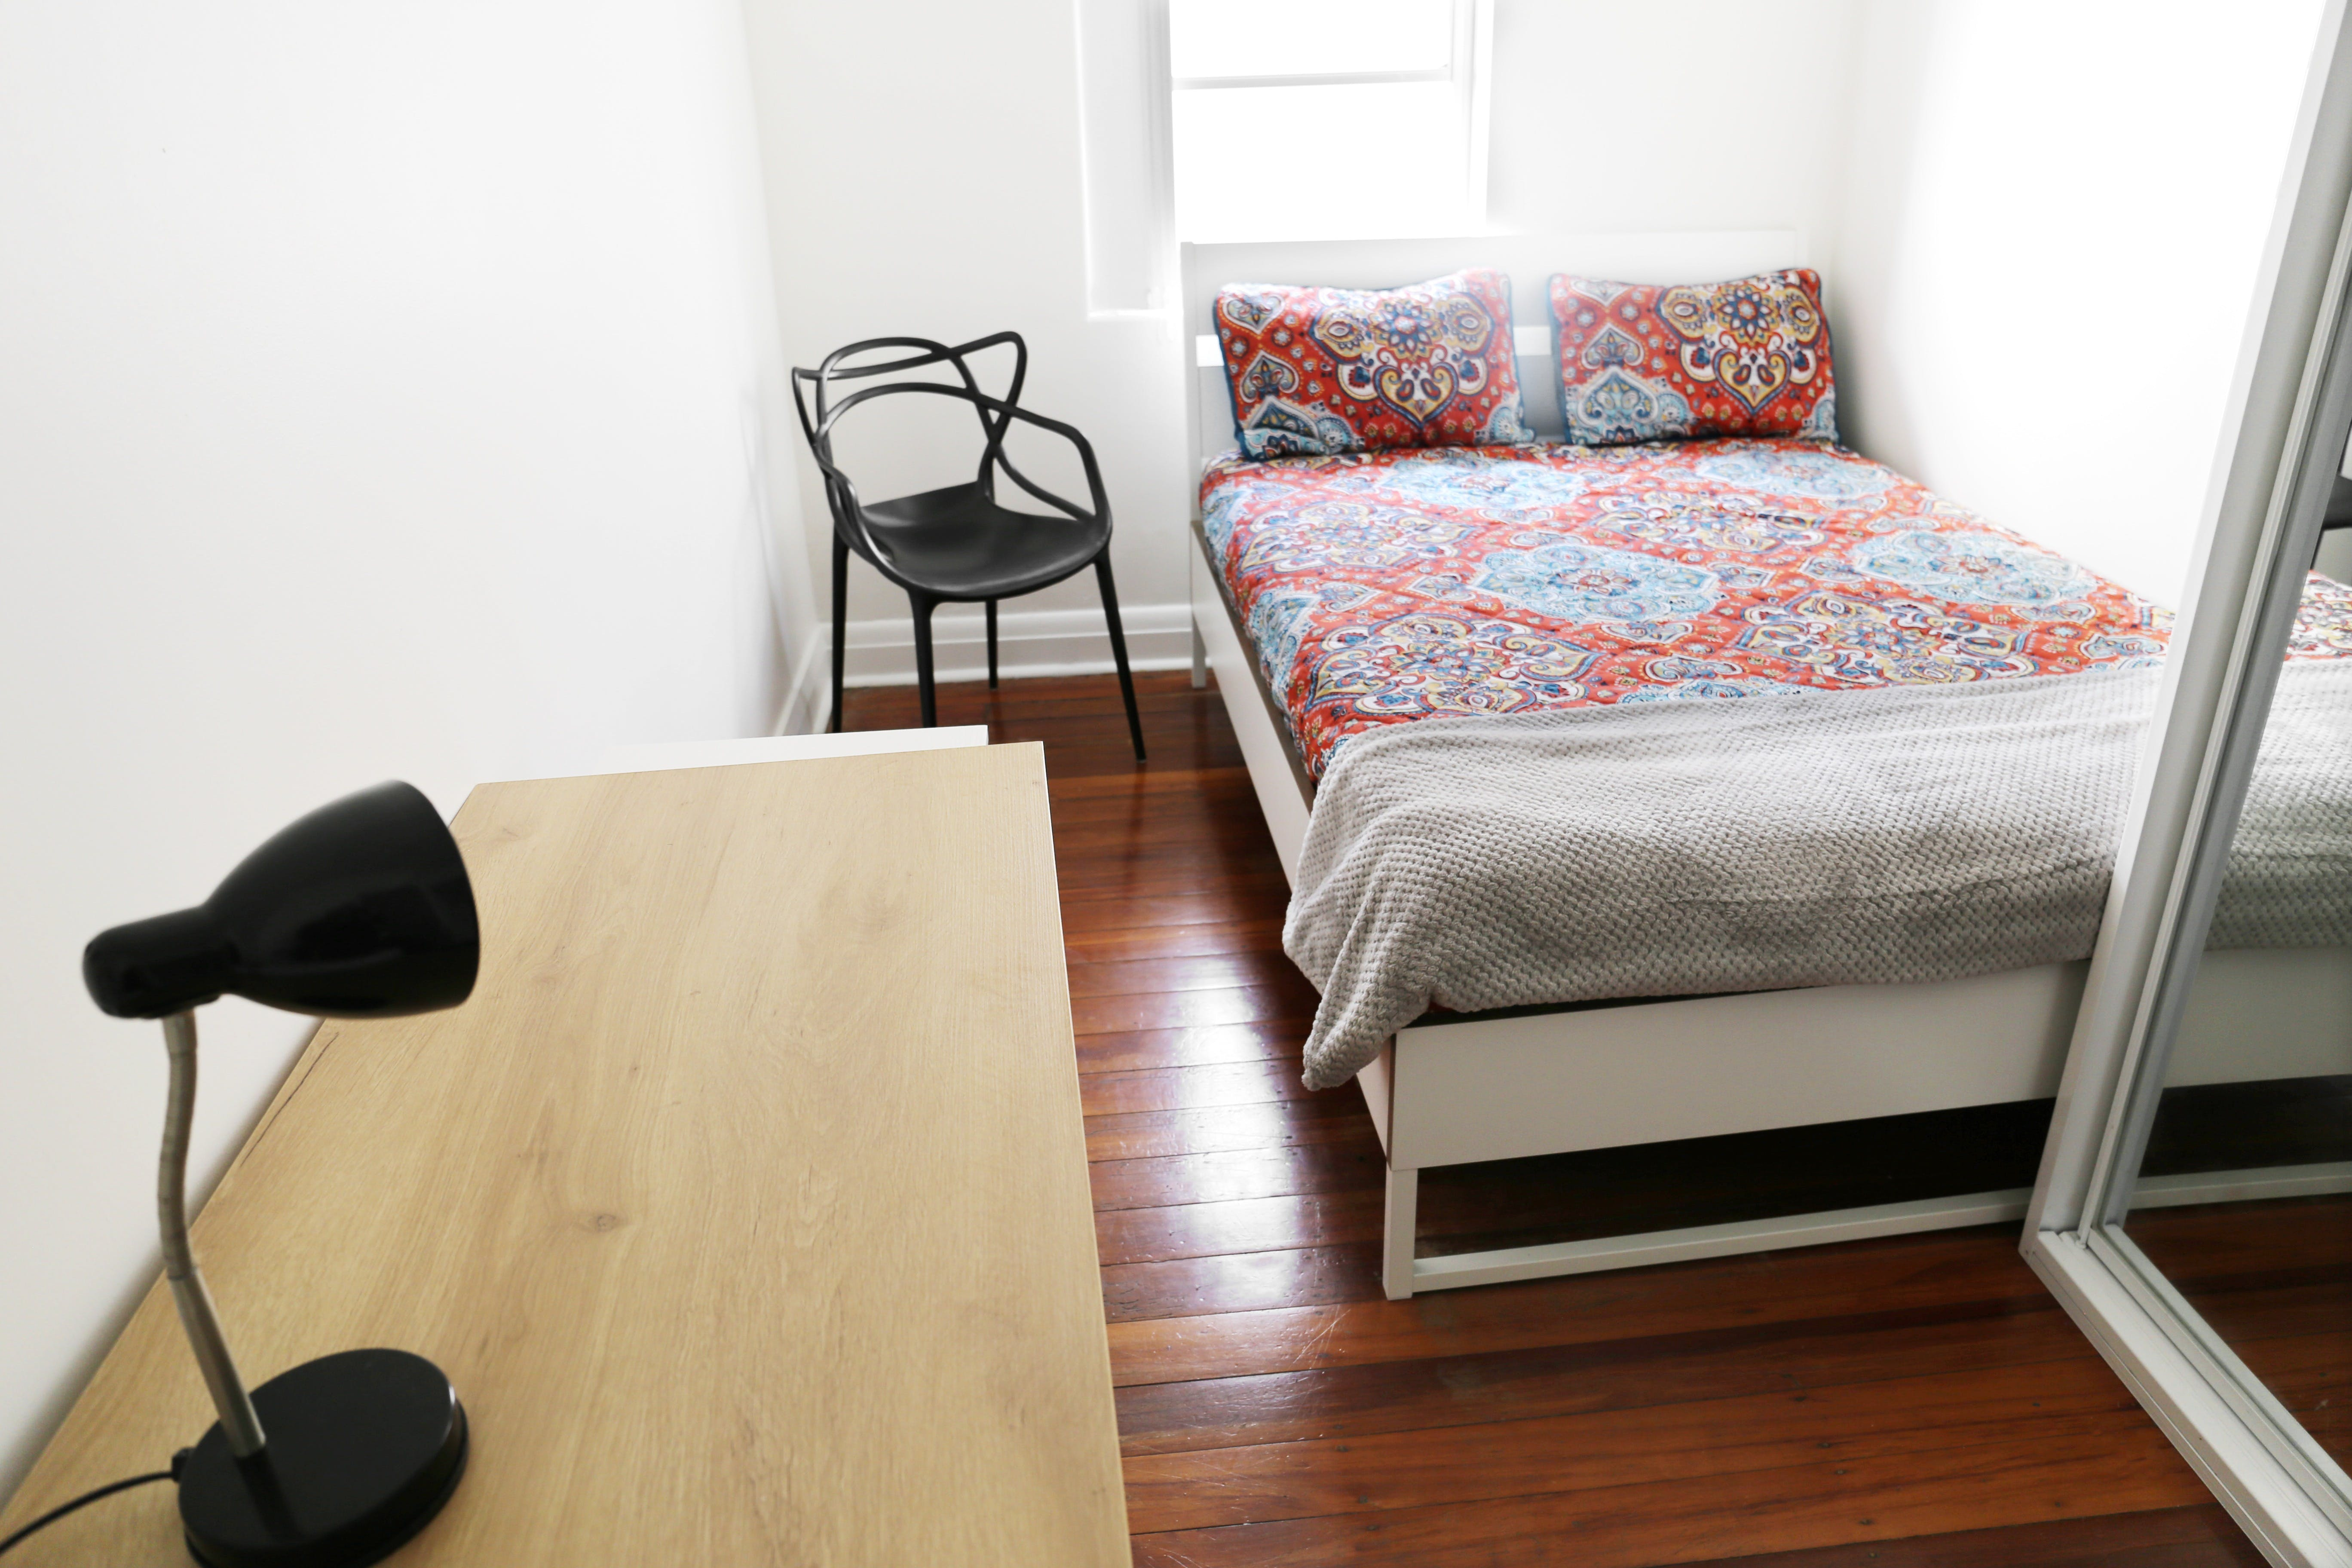 Myola Coogee Accommodation - Accommodation in Surfers Paradise